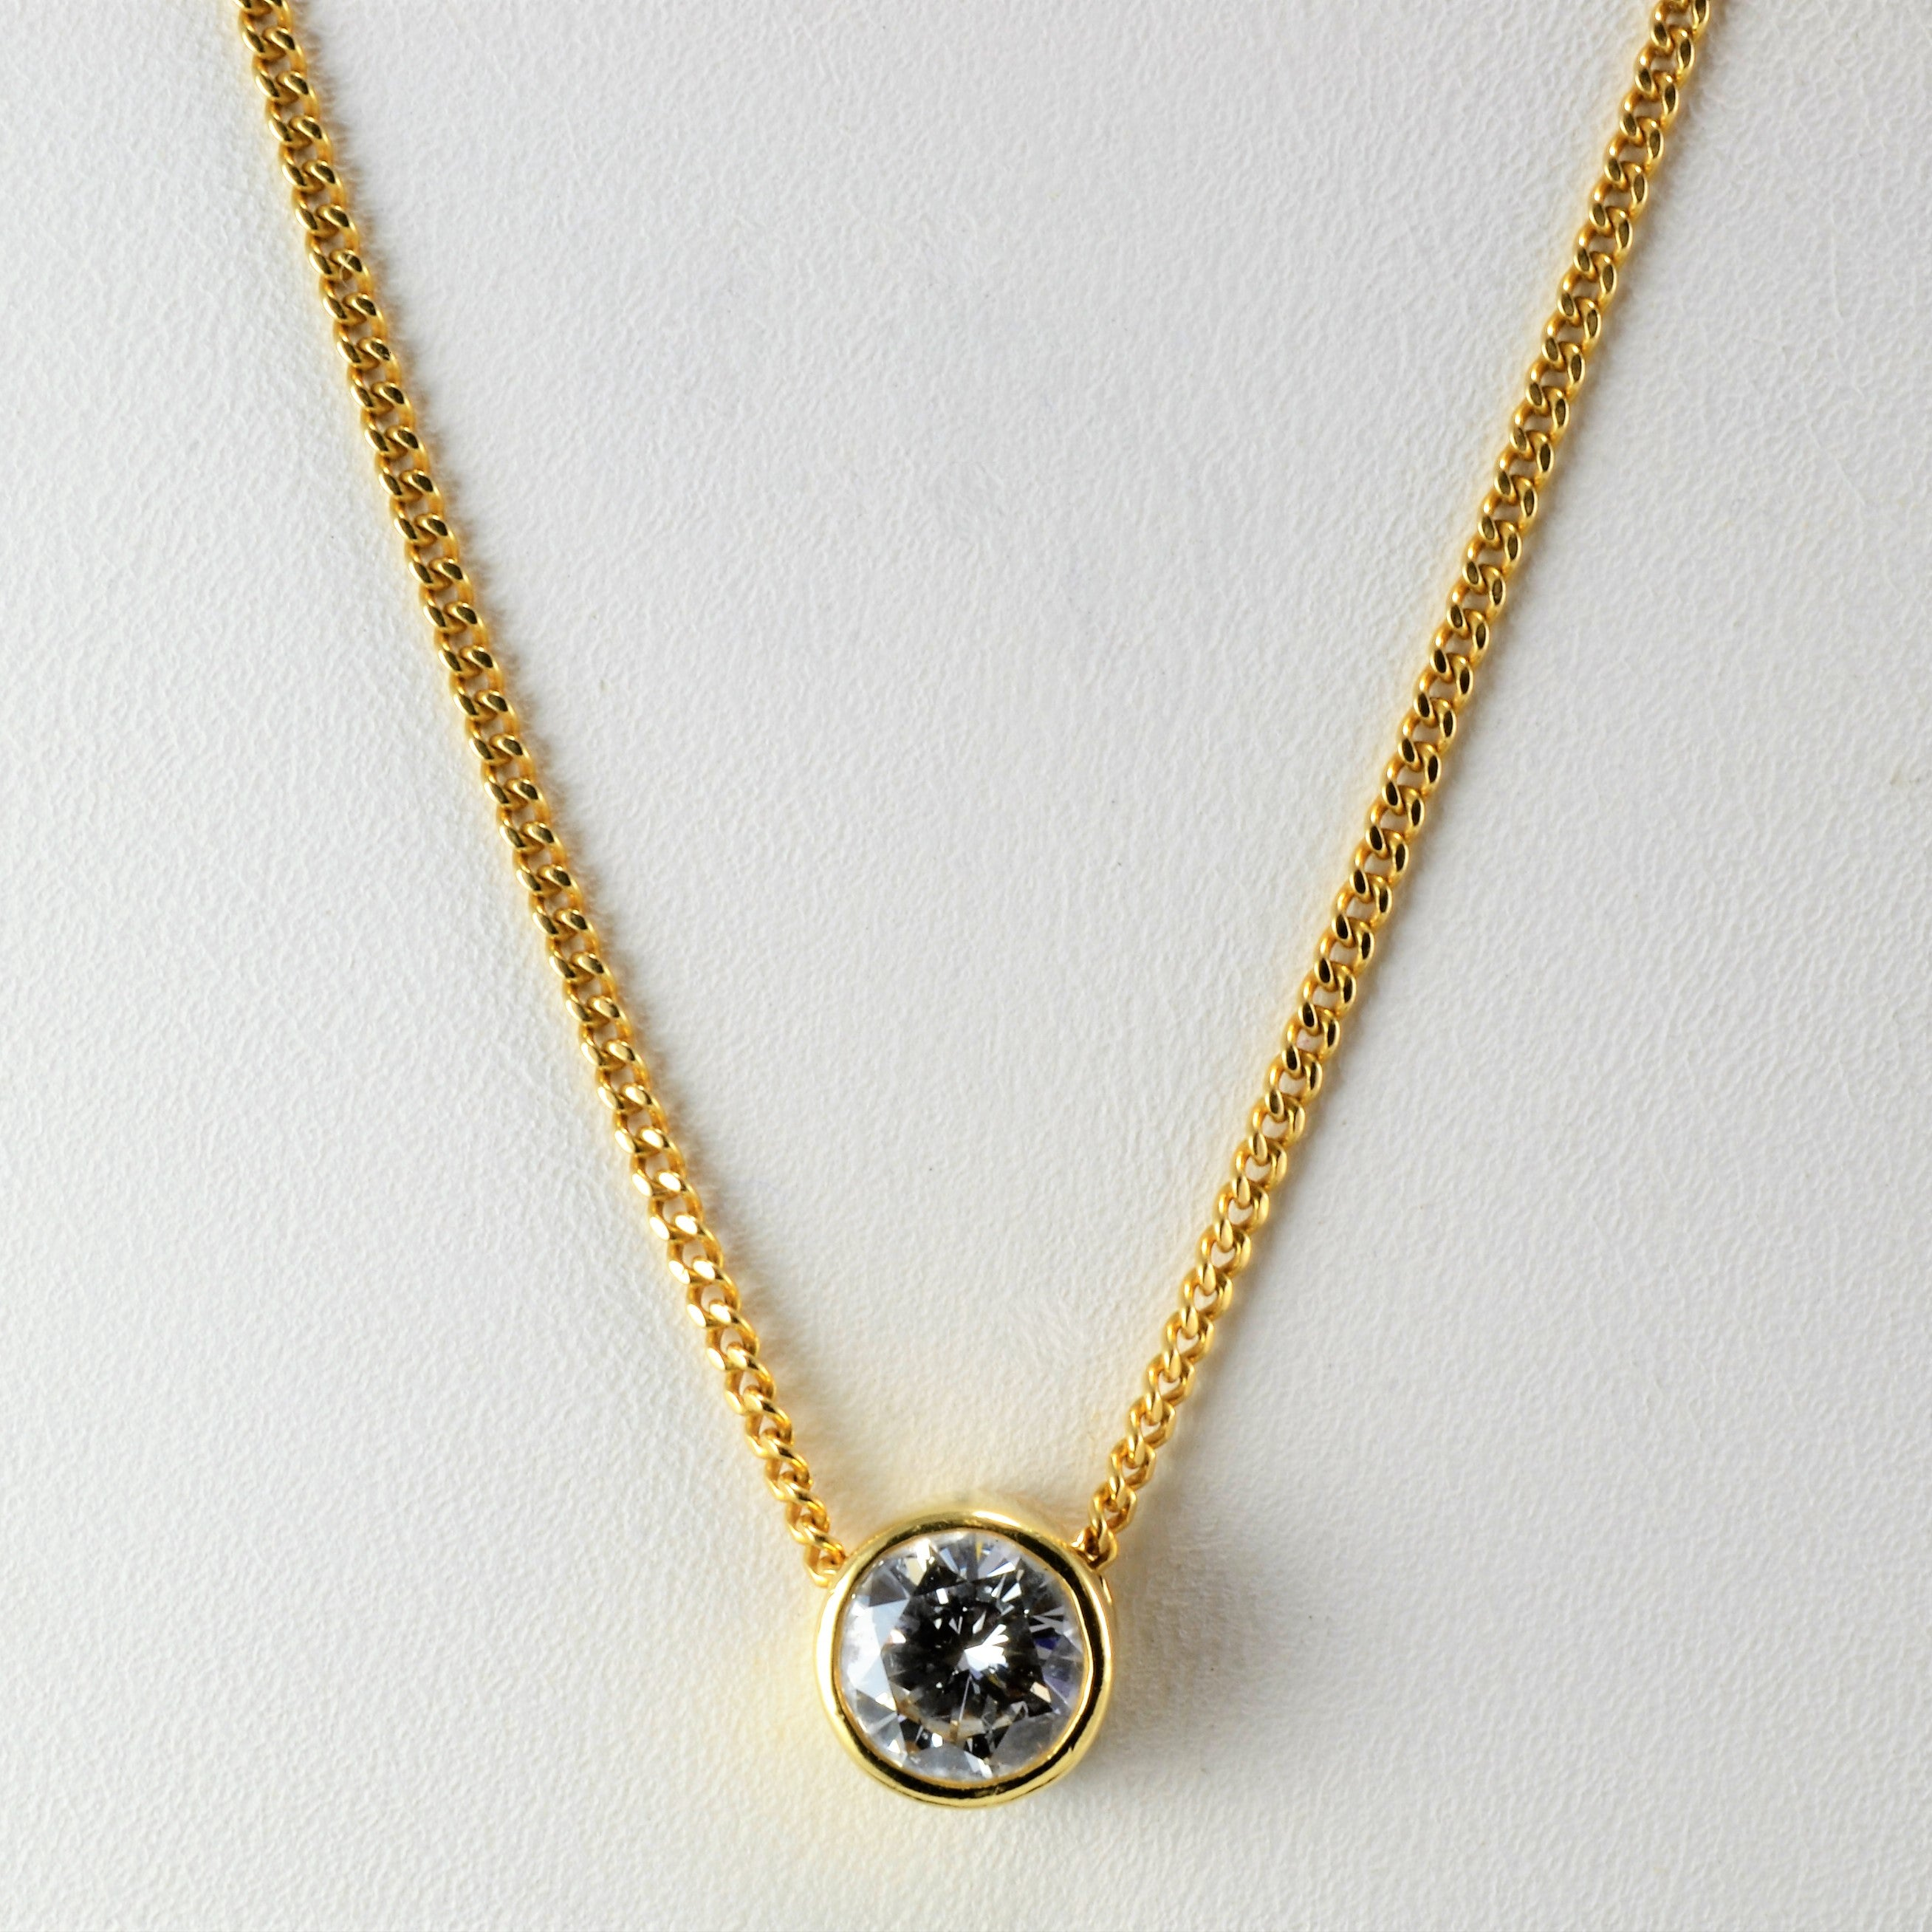 gold bezel rose solitaire cubic or set tiny zirconia pendant products met white cz necklace nx yellow